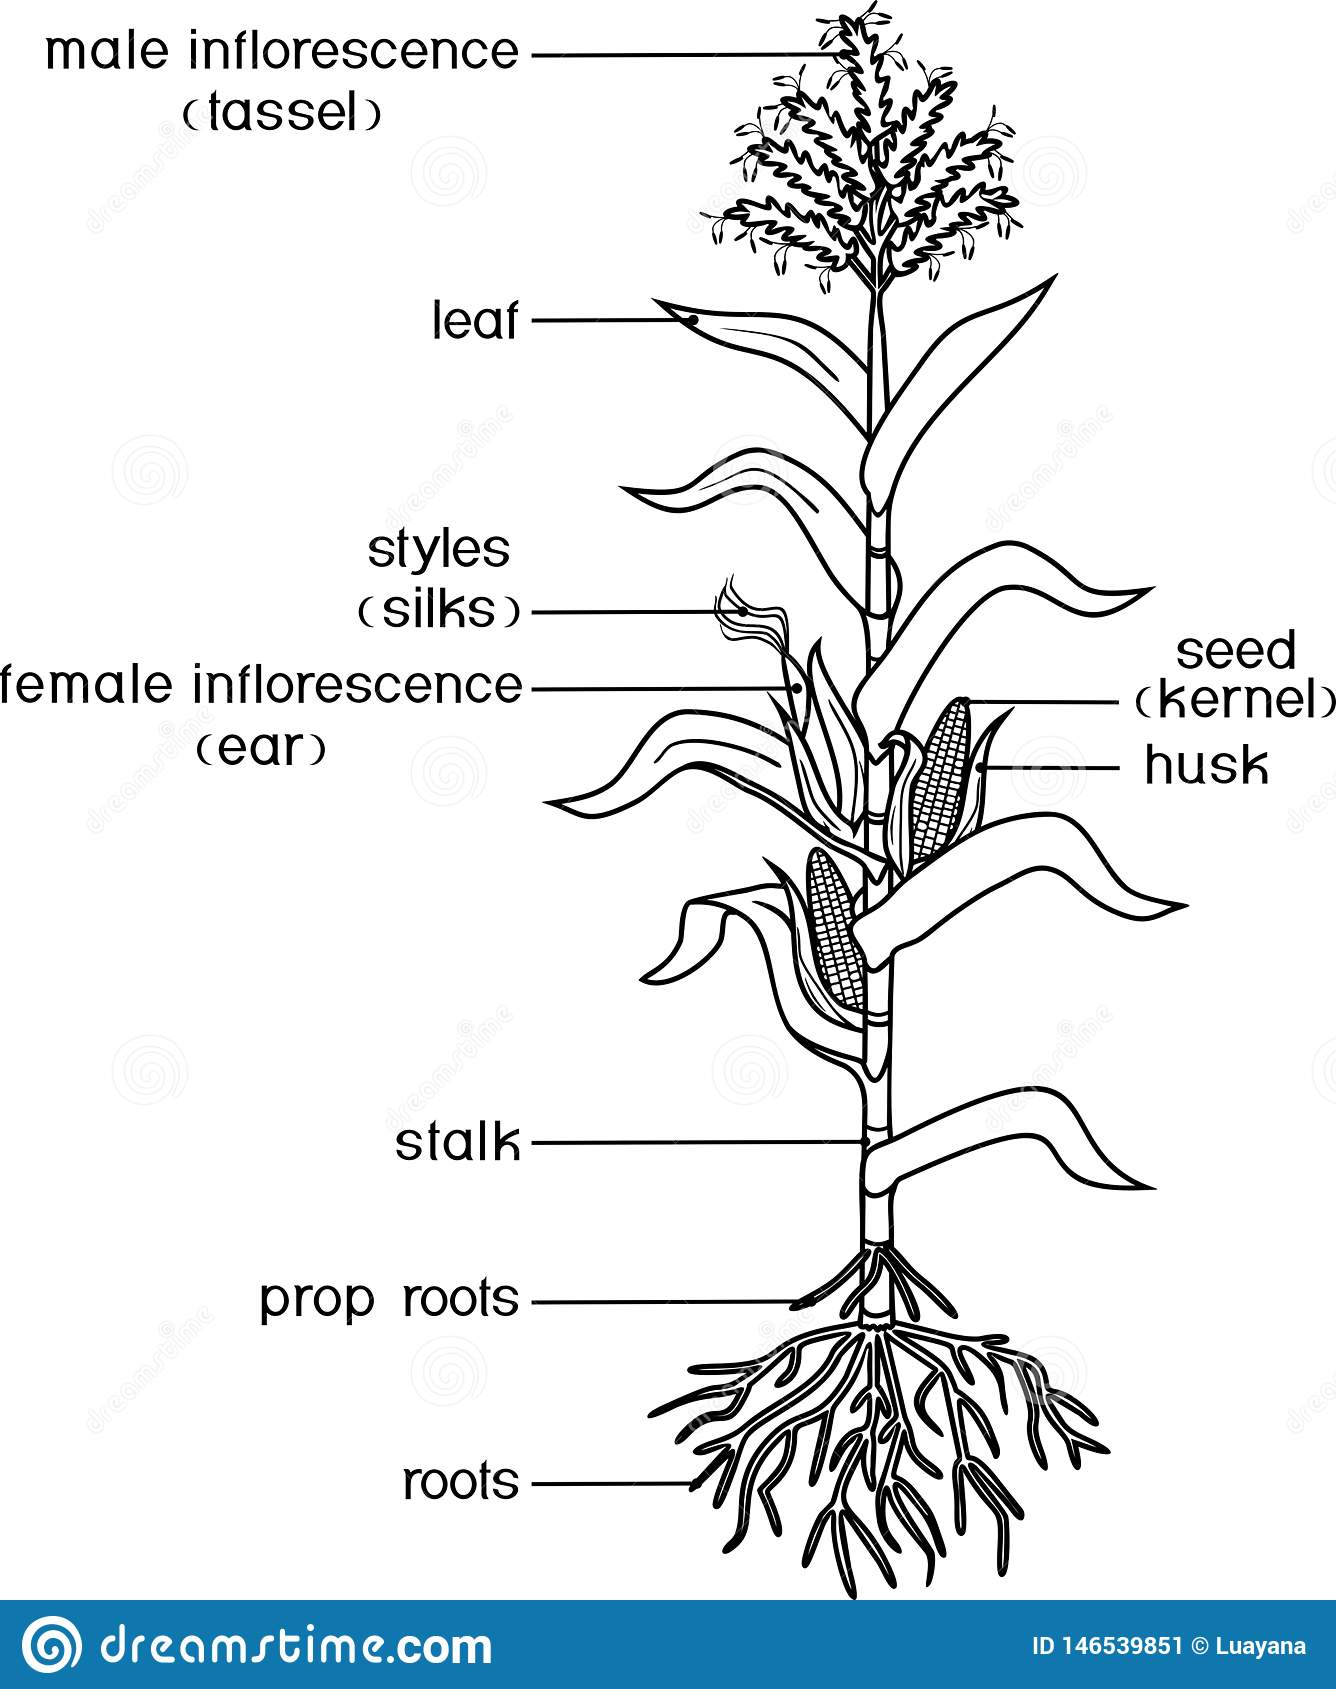 Coloring Page With Parts Of Plant Morphology Of Corn